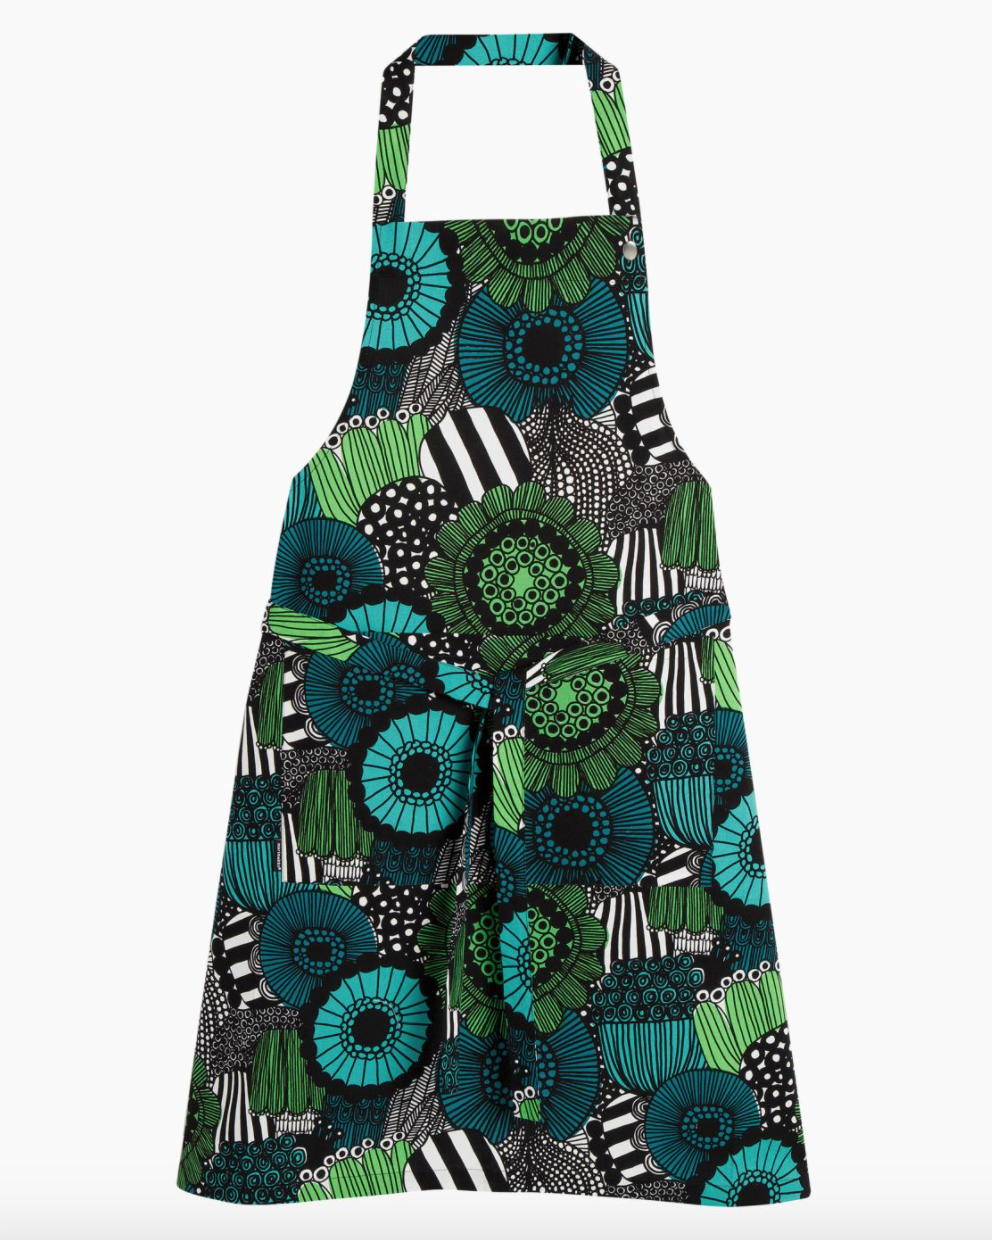 A graphic green and blue floral apron.